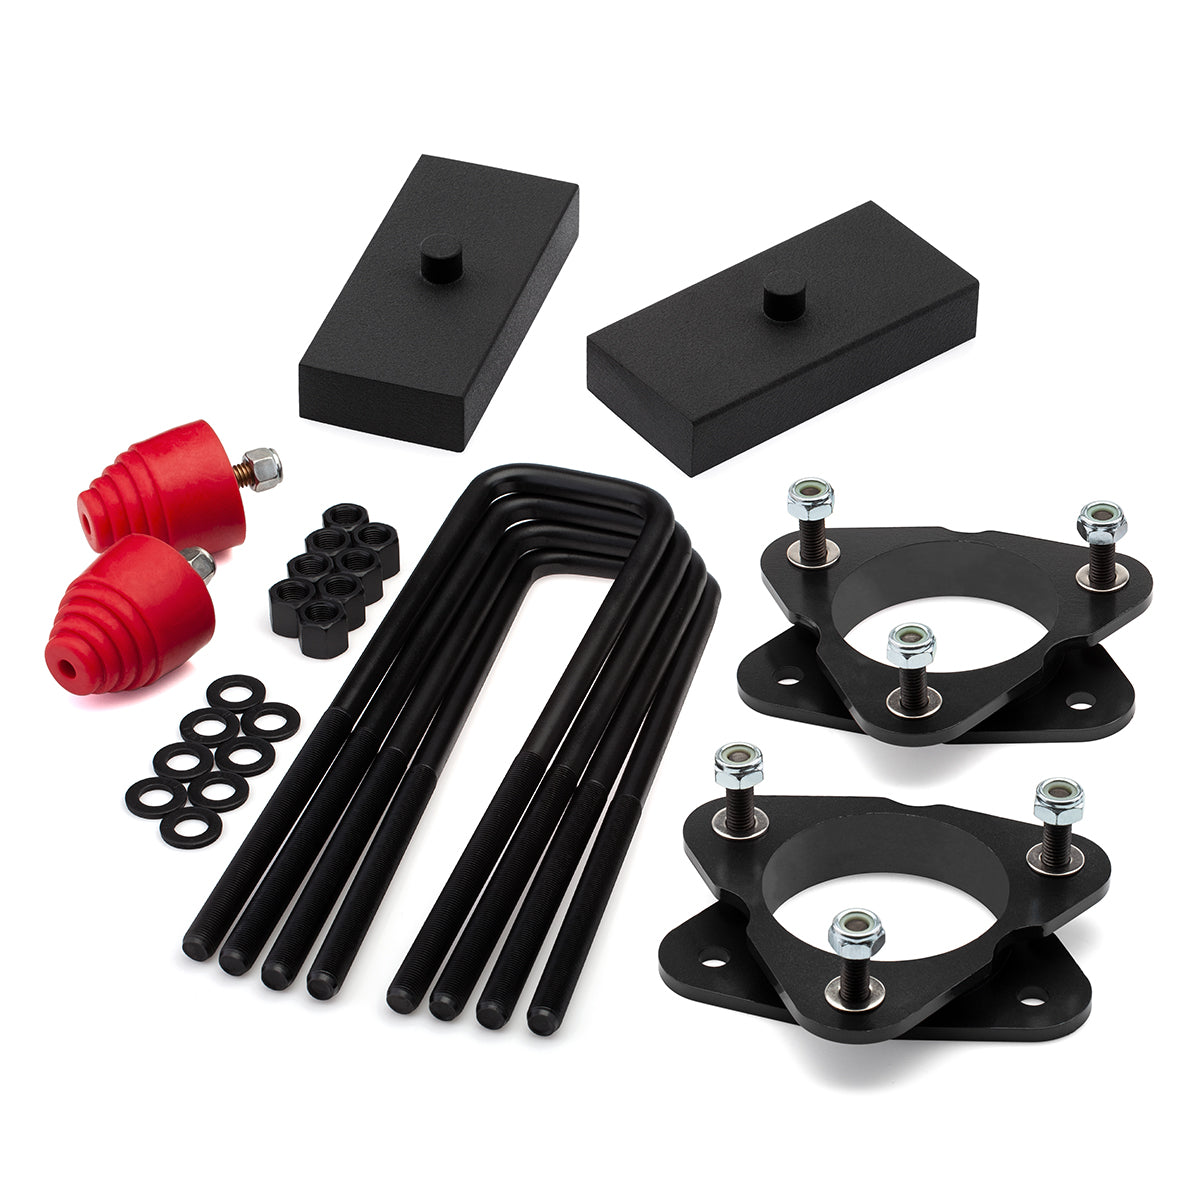 2007-2020 Chevy Silverado 1500 Full Lift Kit with Bump Stops